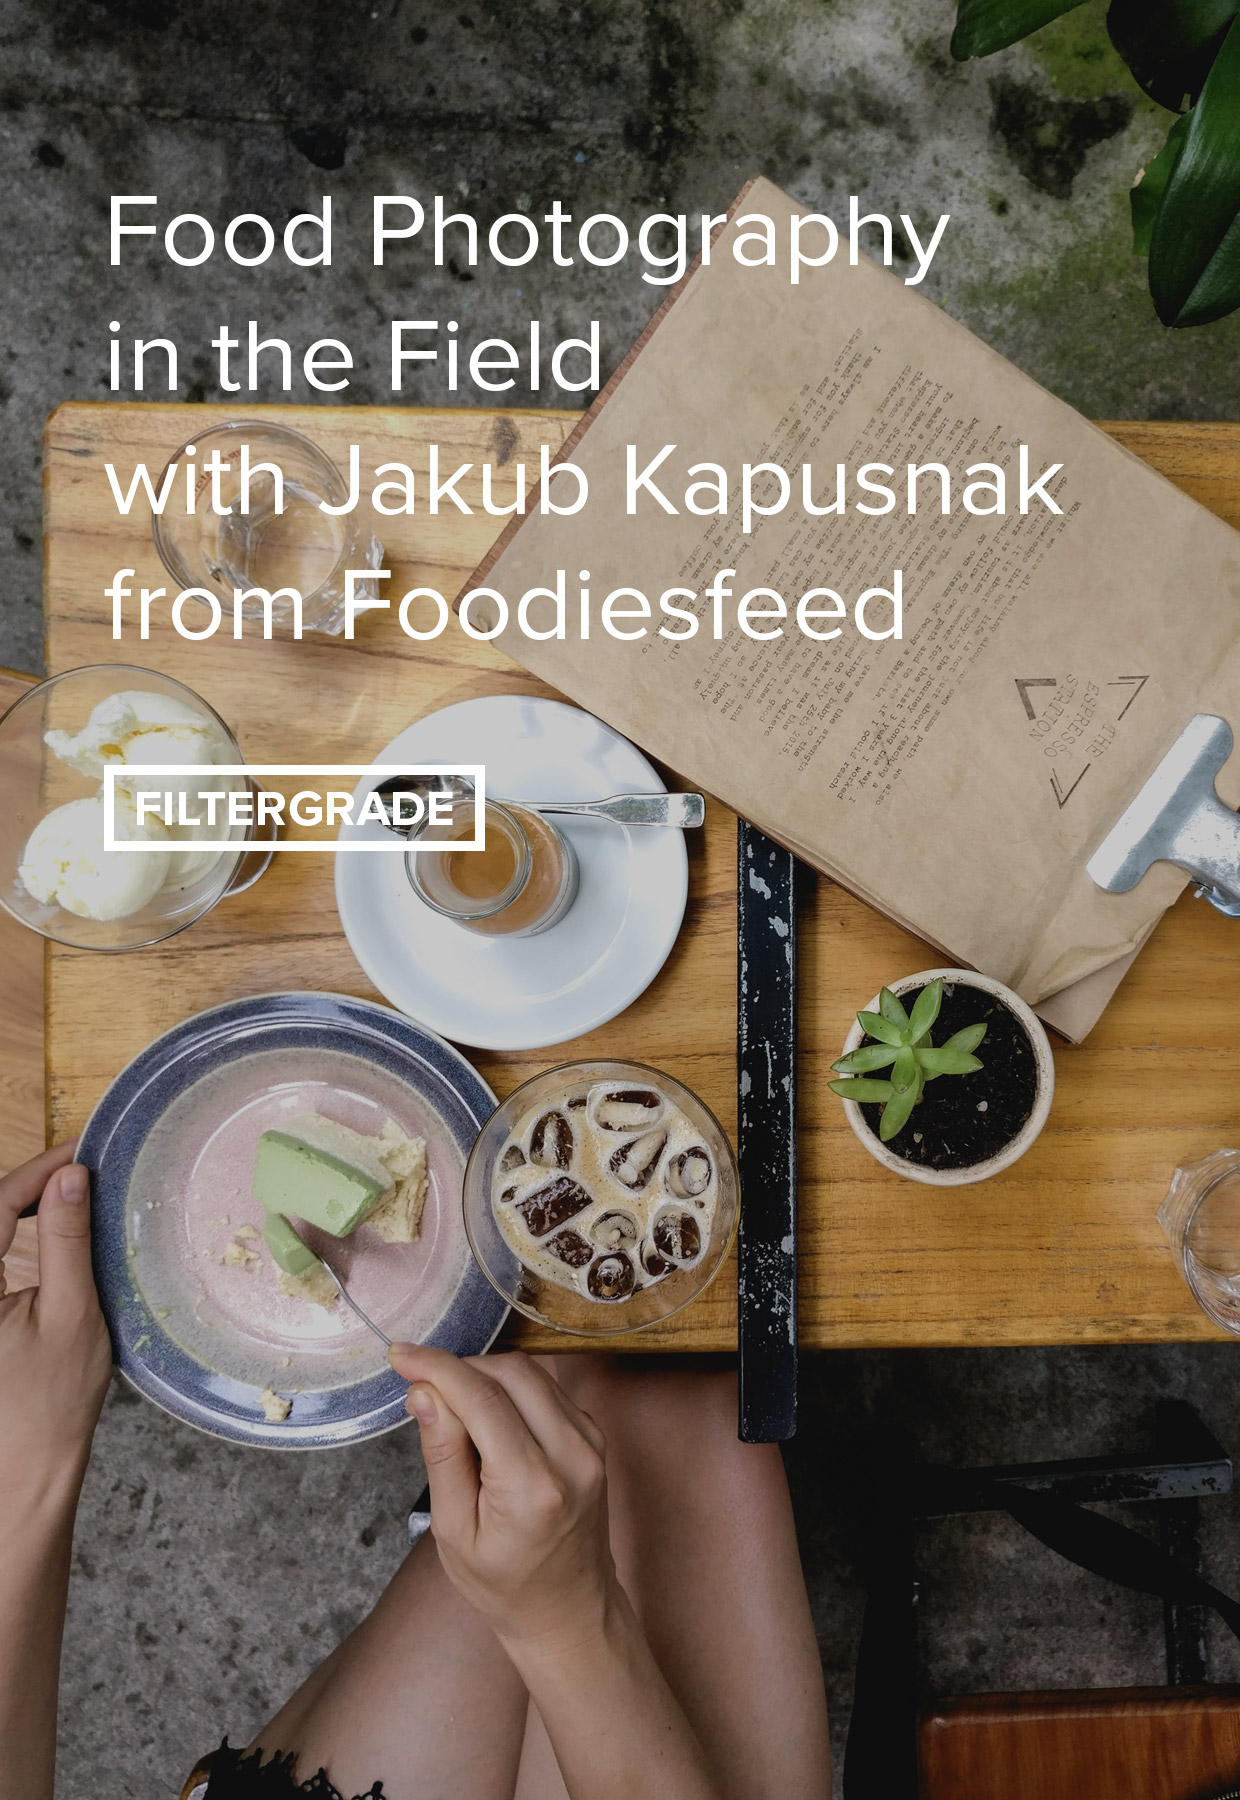 Food photography tips from Jakub Kapusnak of Foodiesfeed.